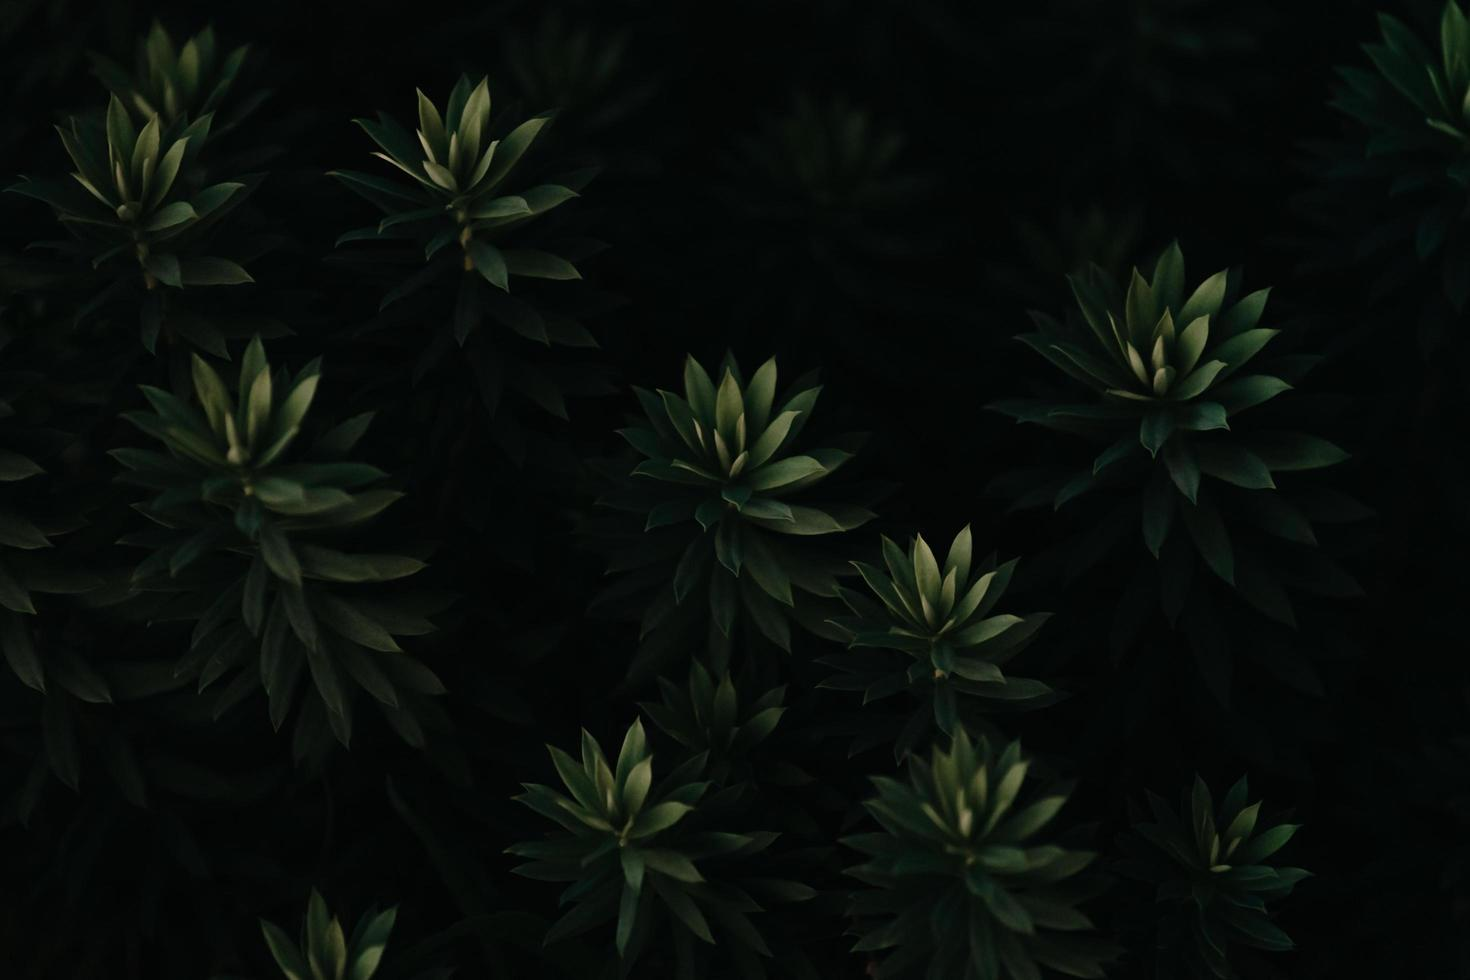 A close-up of a super textured repetitive dark green plant photo